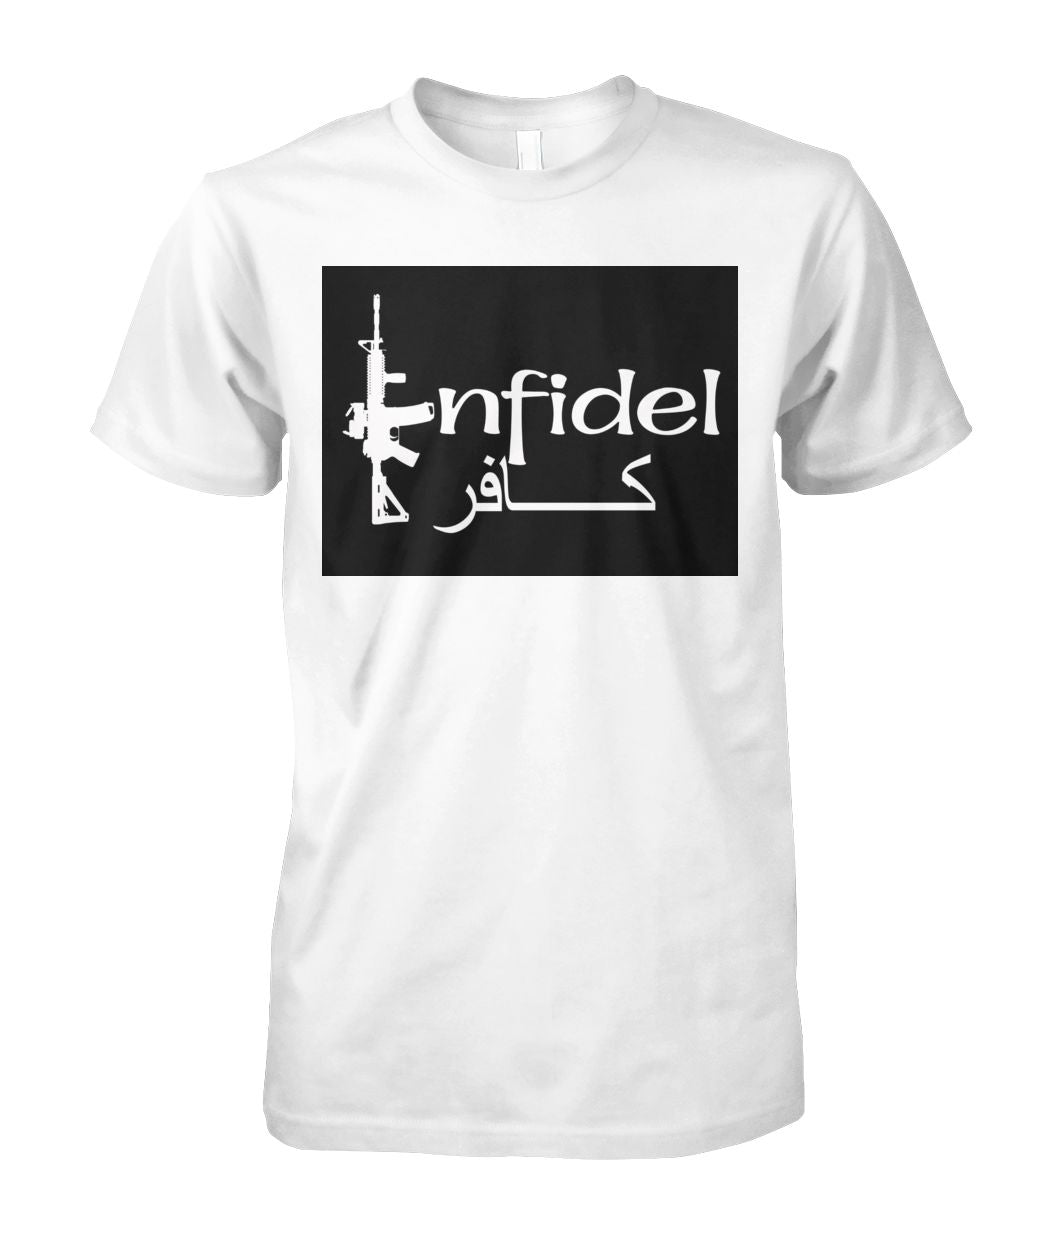 Infidel Rifle Shirt - Unisex